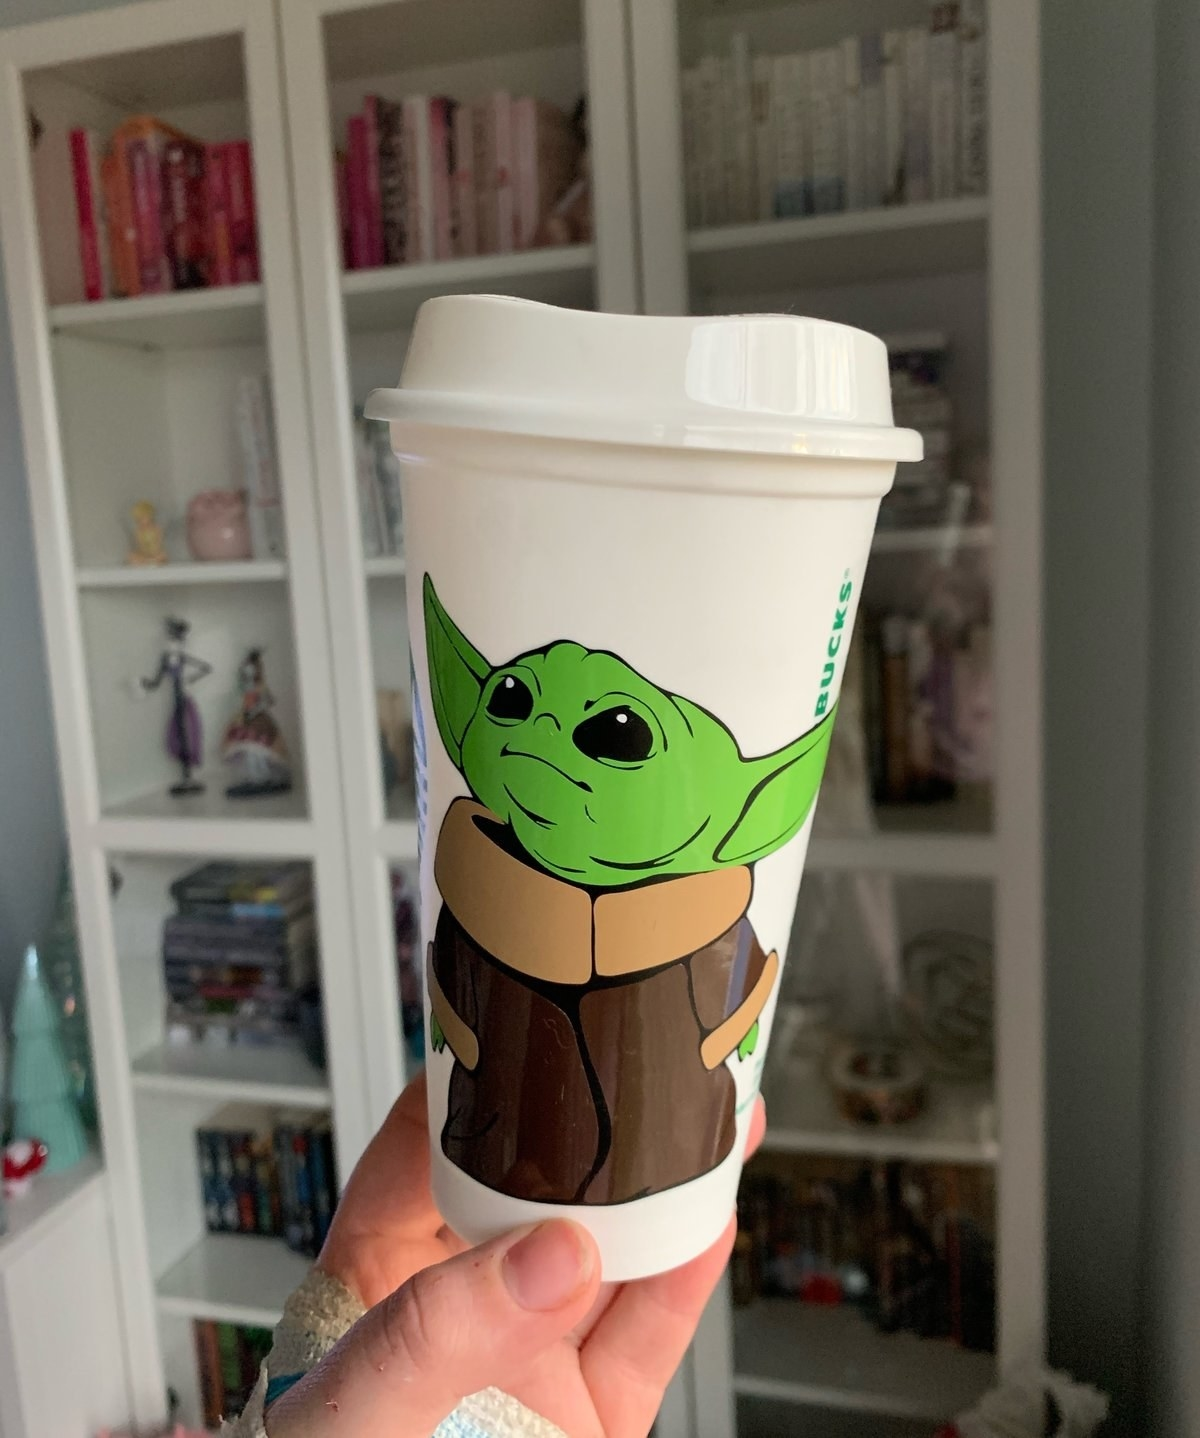 a hot cup with baby yoda on it